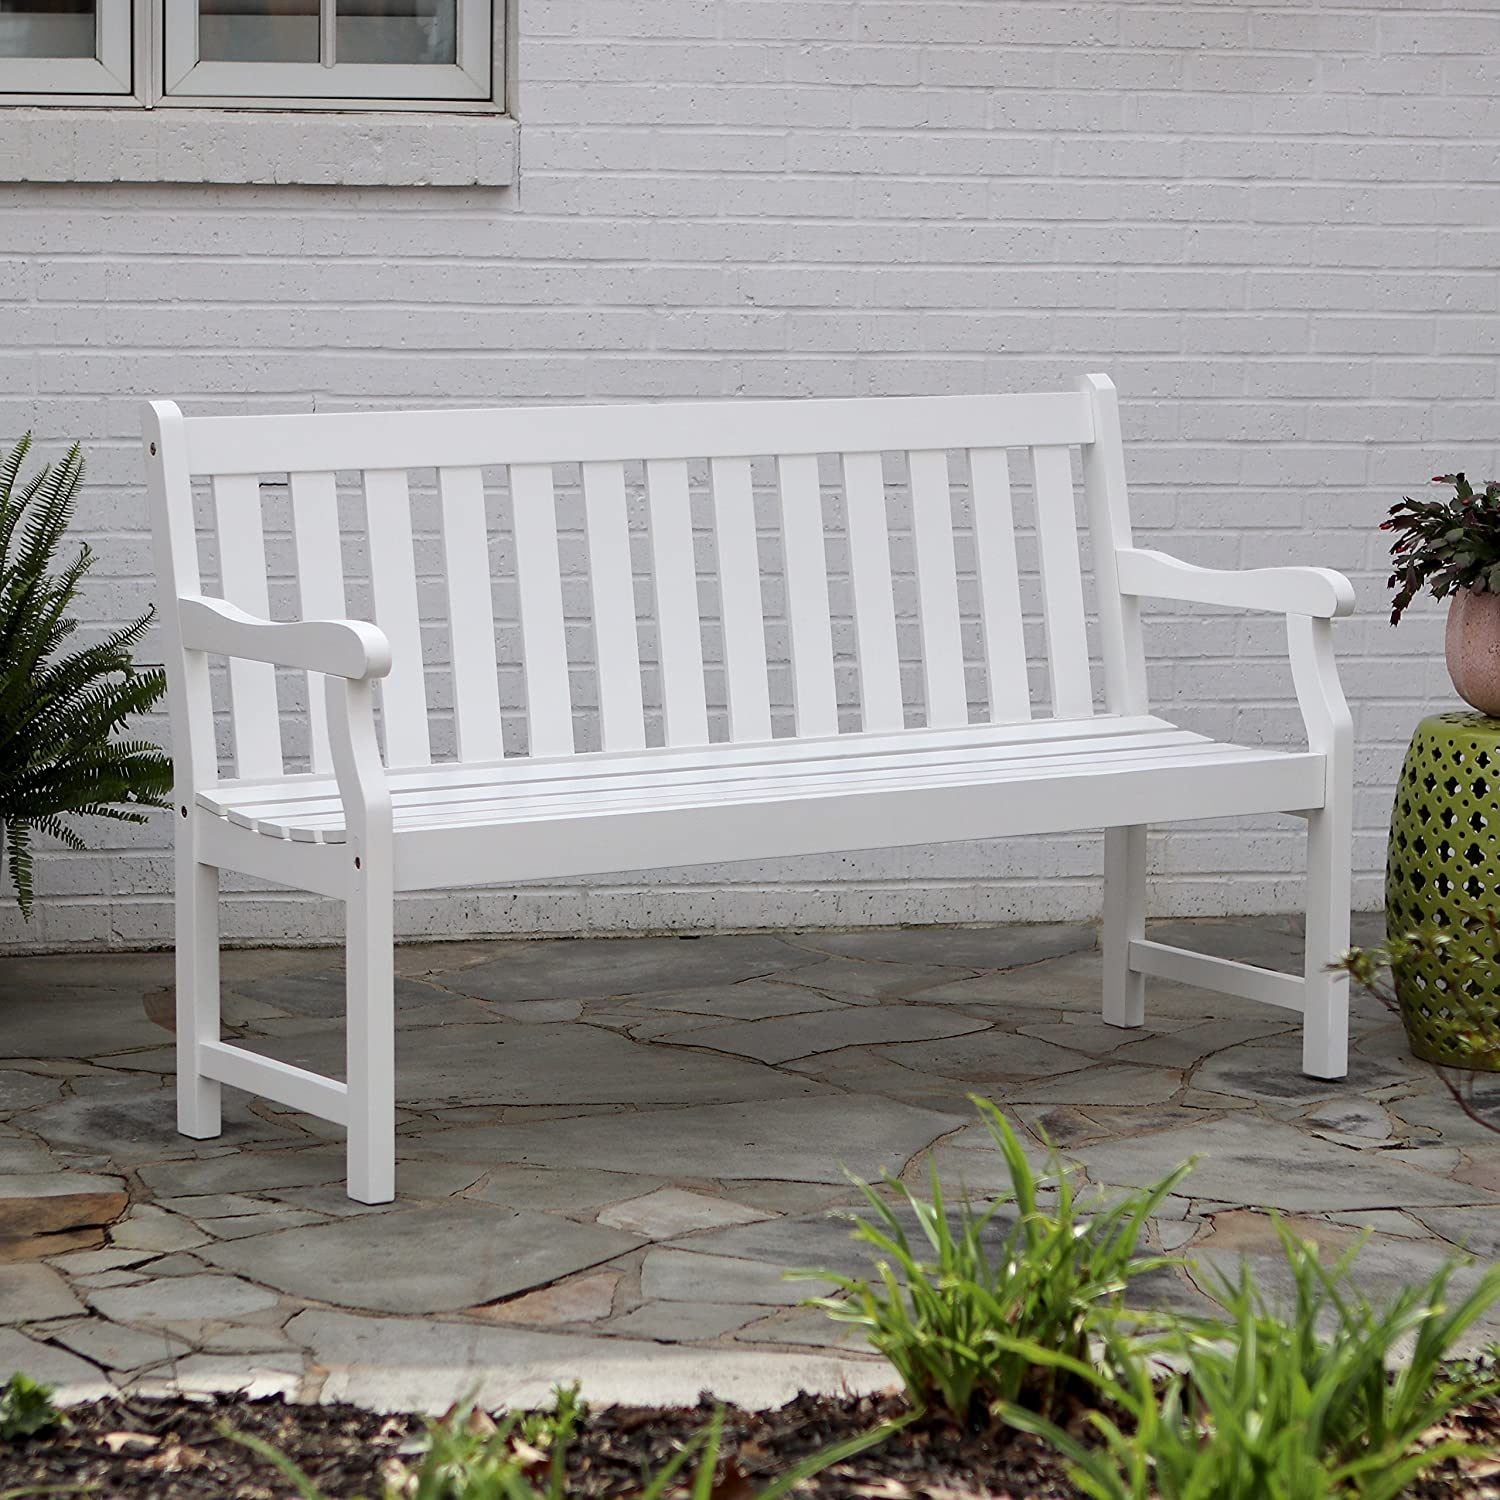 D cor Therapy FR8587 Outdoor Bench, White